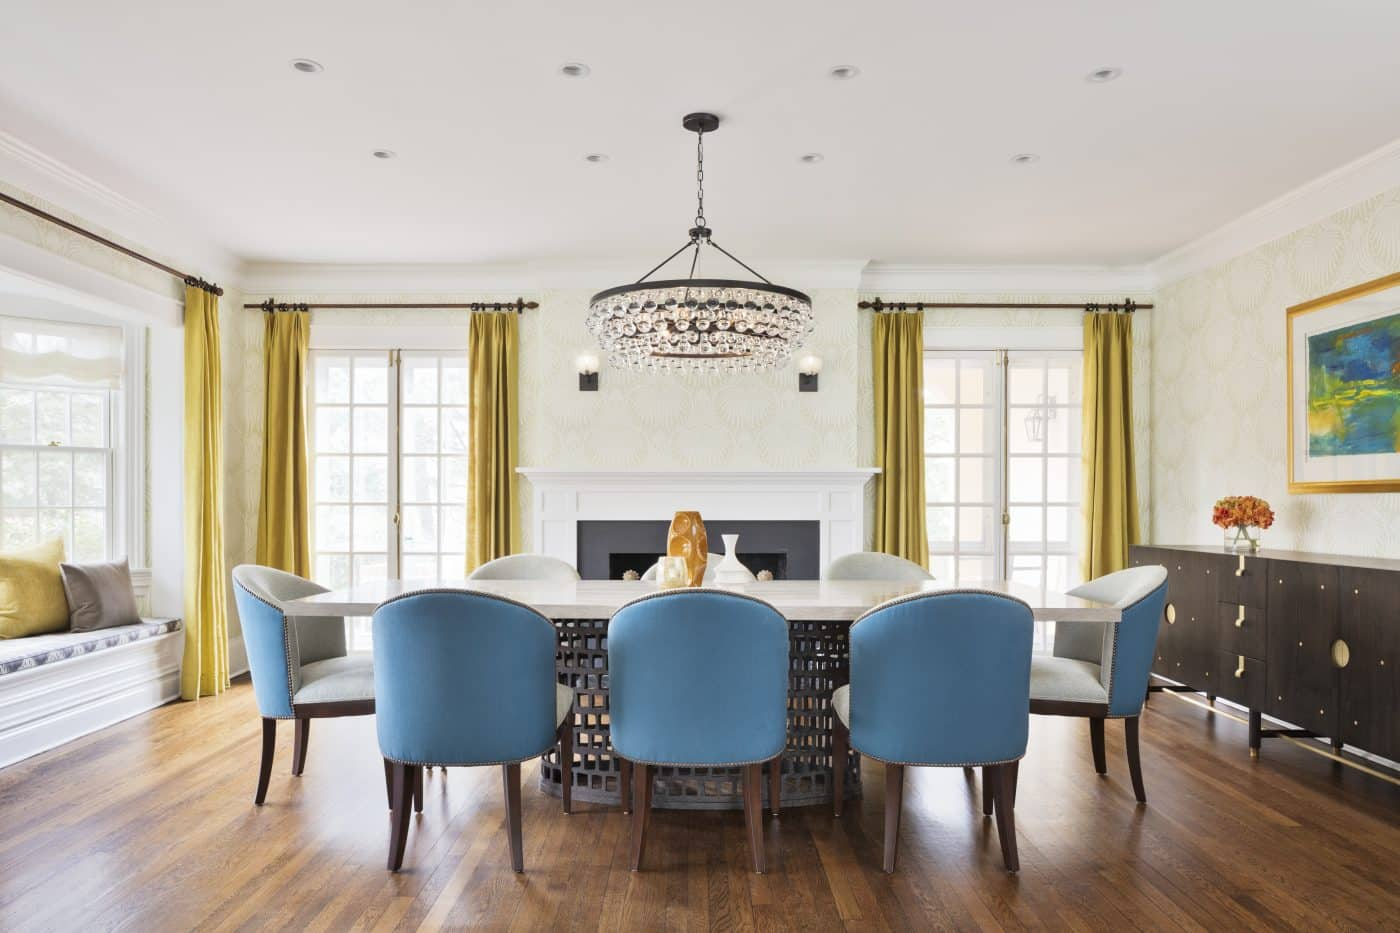 The dining room of a Greenwich, Connecticut house with interiors by Danielle Fennoy of Revamp Interior Design